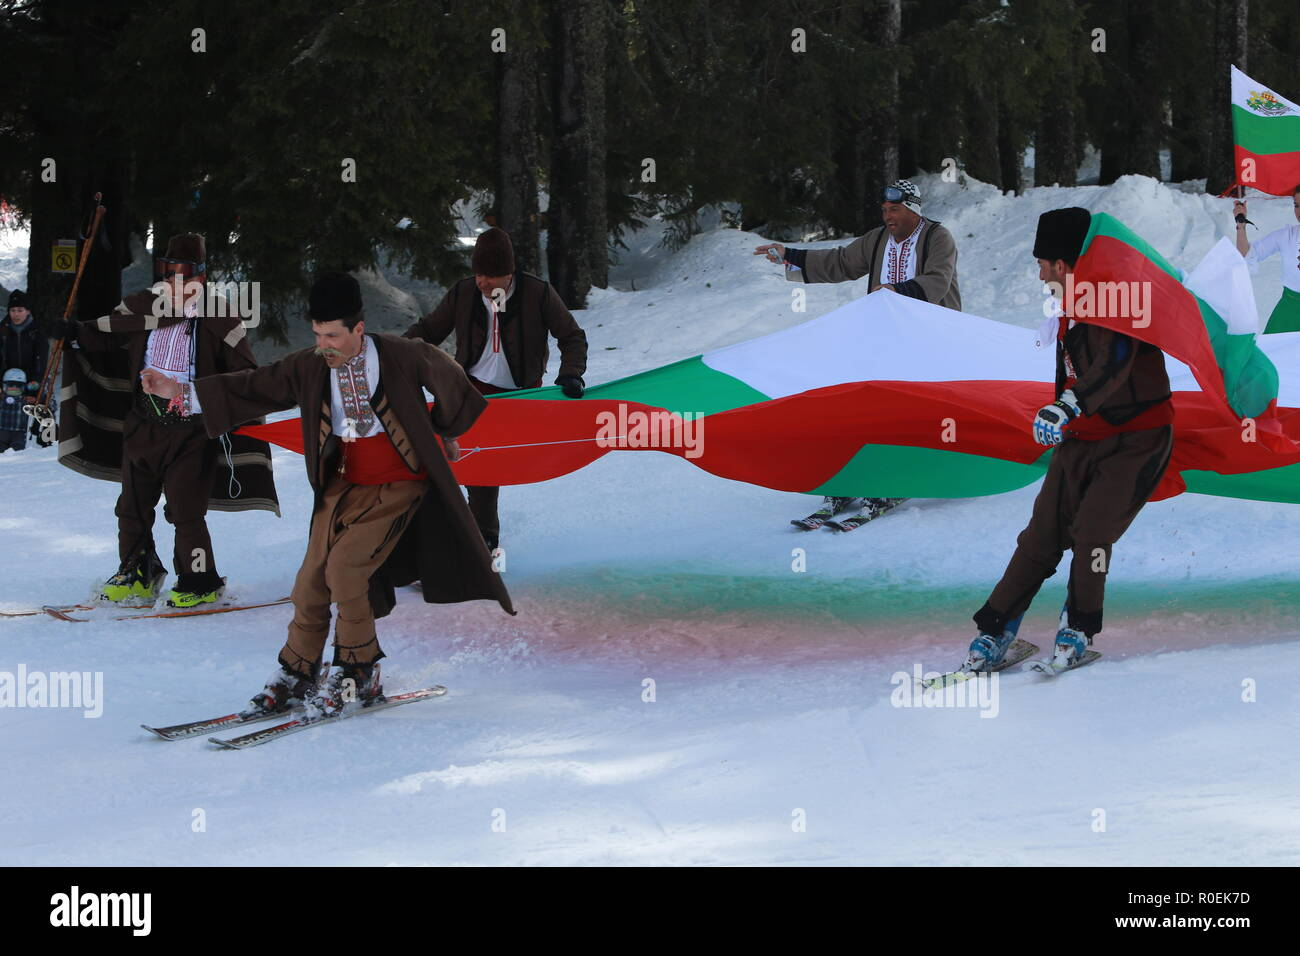 Skiing with Bulgarian flags at Pamporovo ski resort, Bulgaria. People dressed with traditional Bulgarian clothes skiing with the Bulgarian national fl - Stock Image